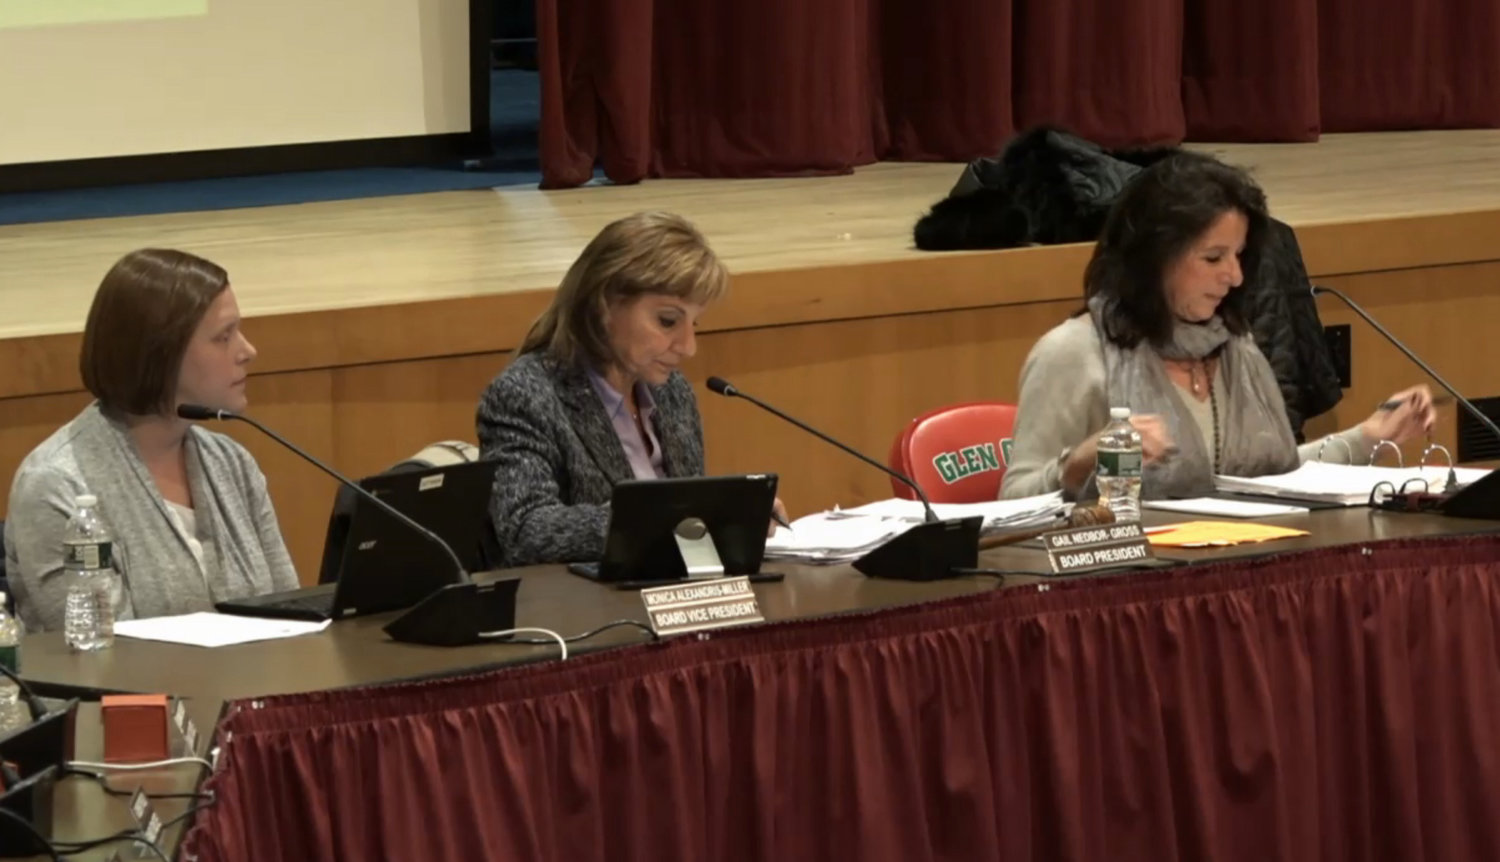 Glen Cove City School District officials, from left, Monica Alexandris-Miller, Gail Nedbor-Gross and Dr. Maria Rianna discussed the preliminary budget and proposed bond on Jan. 22.